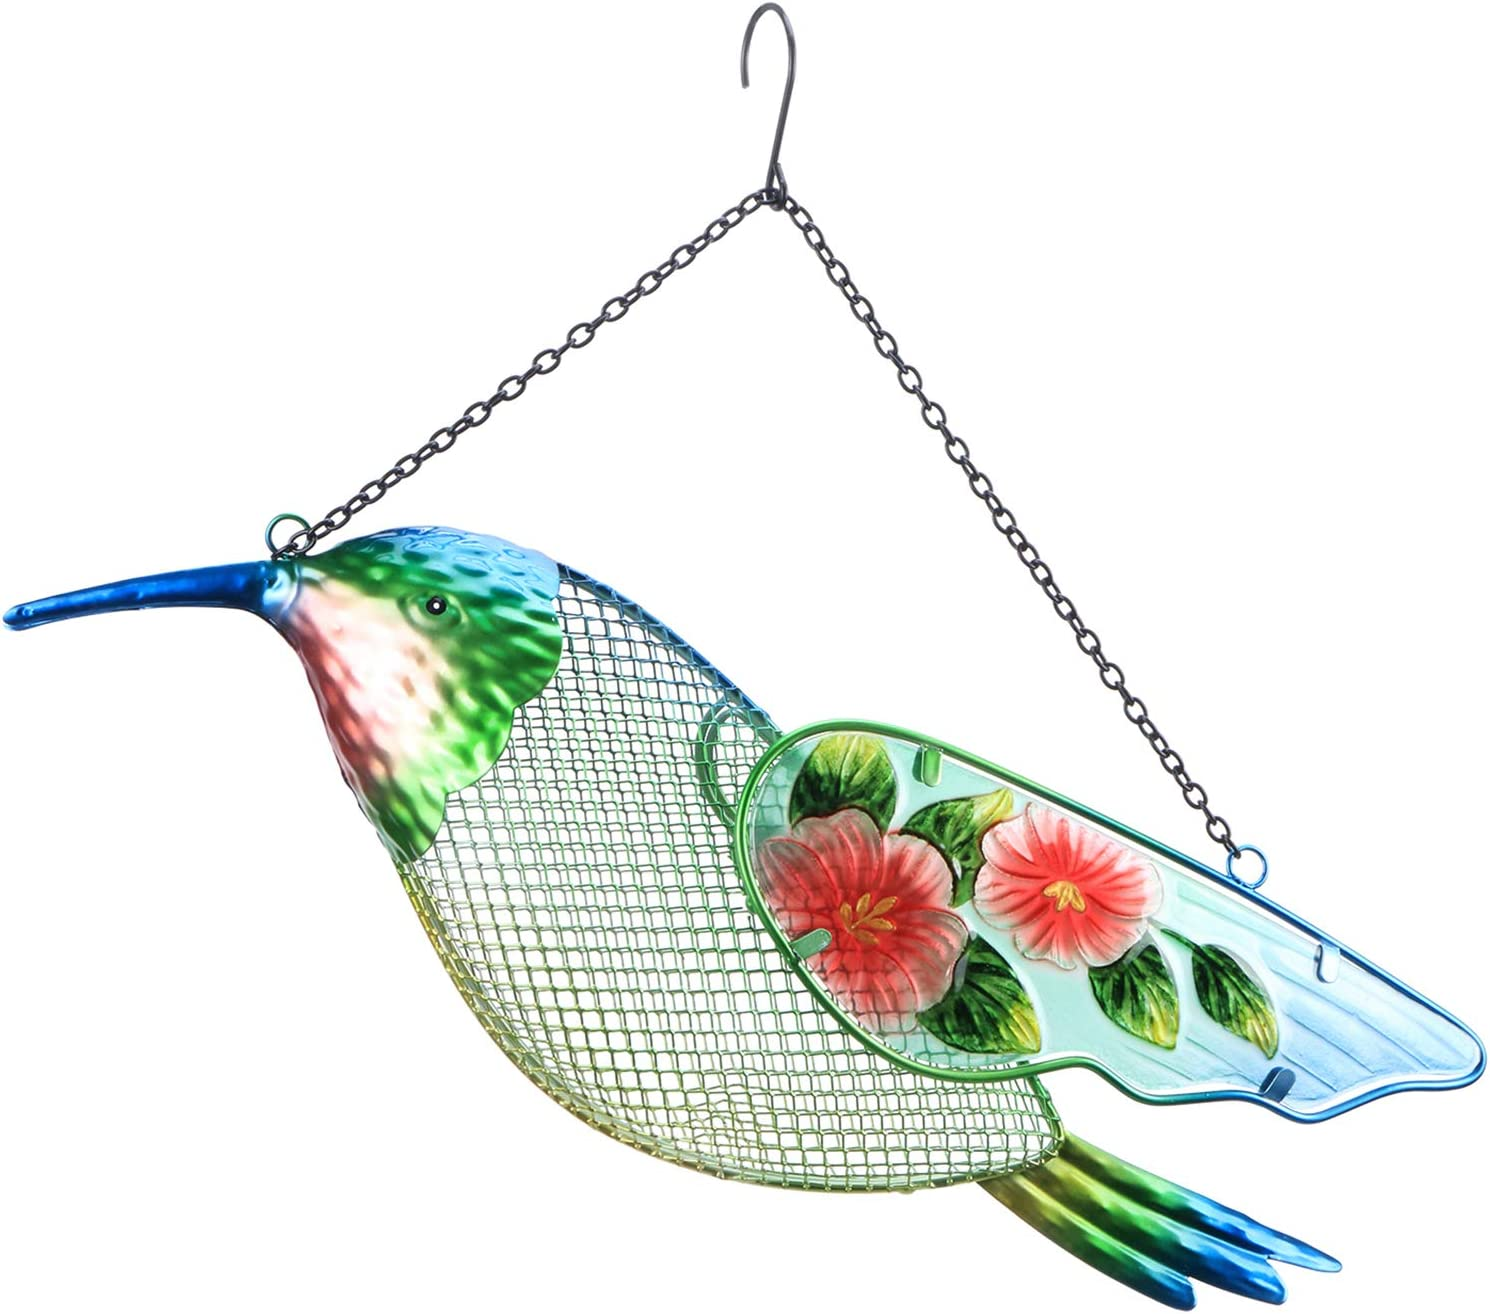 WONDER GARDEN Wild Bird Feeder,17 Inch Hummingbird Feeders Hanging Squirrel Proof Bird Feeders for Outdoors Patio Decor